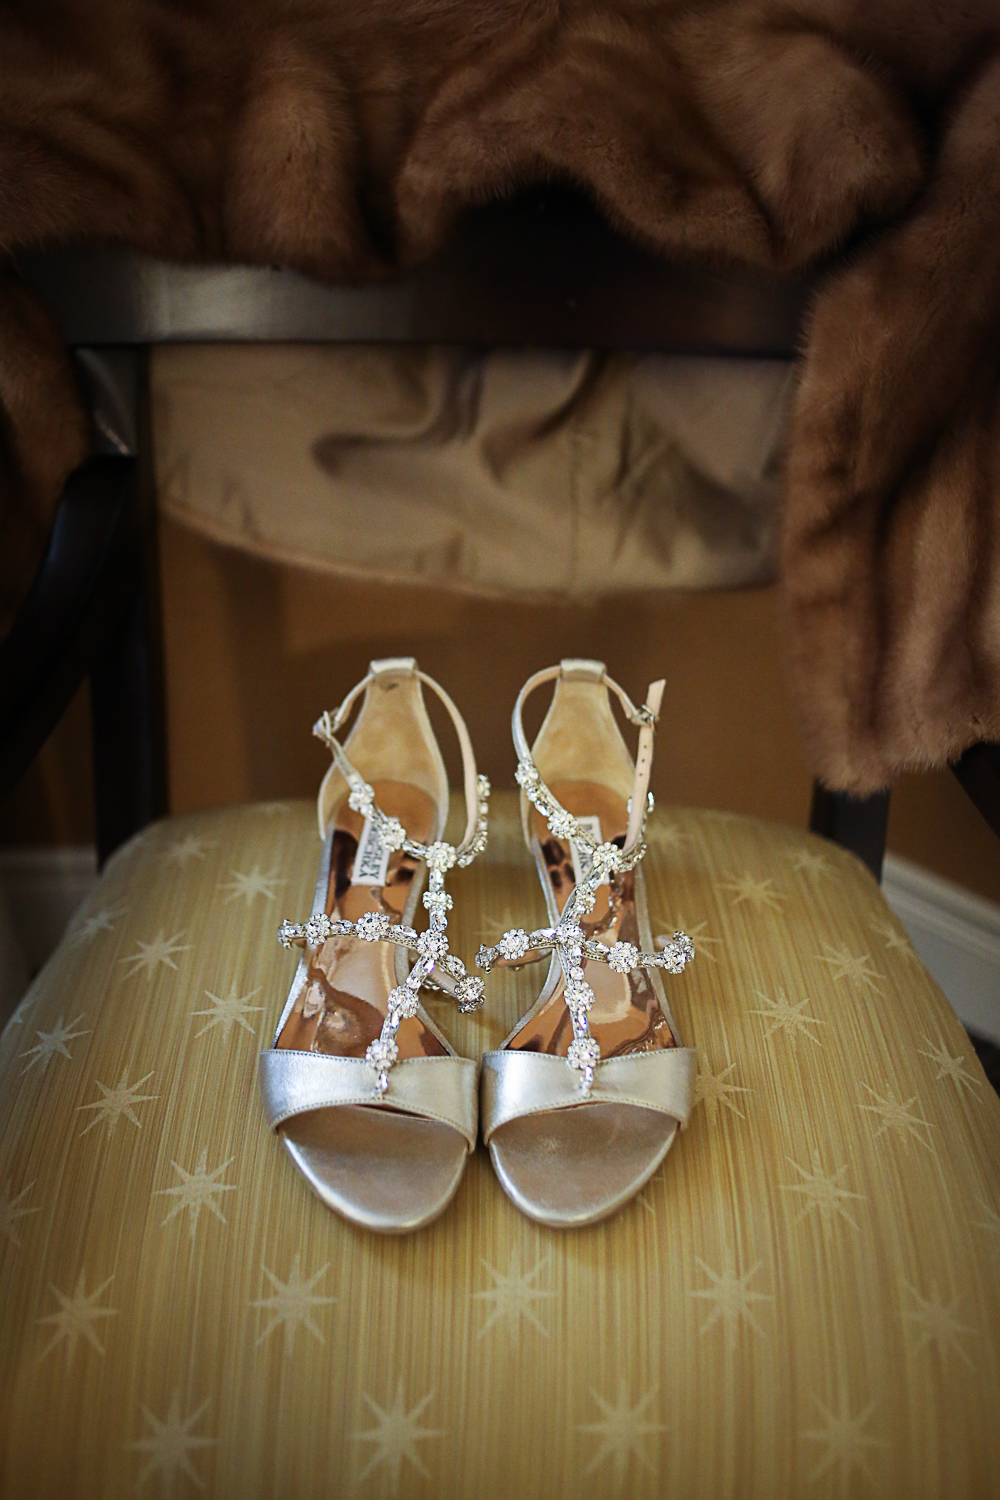 Silver Badgley Mischka Wedding Shoes - Christmas Themed Wedding at Hotel Roanoke | Roanoke, Virginia Wedding Photographer